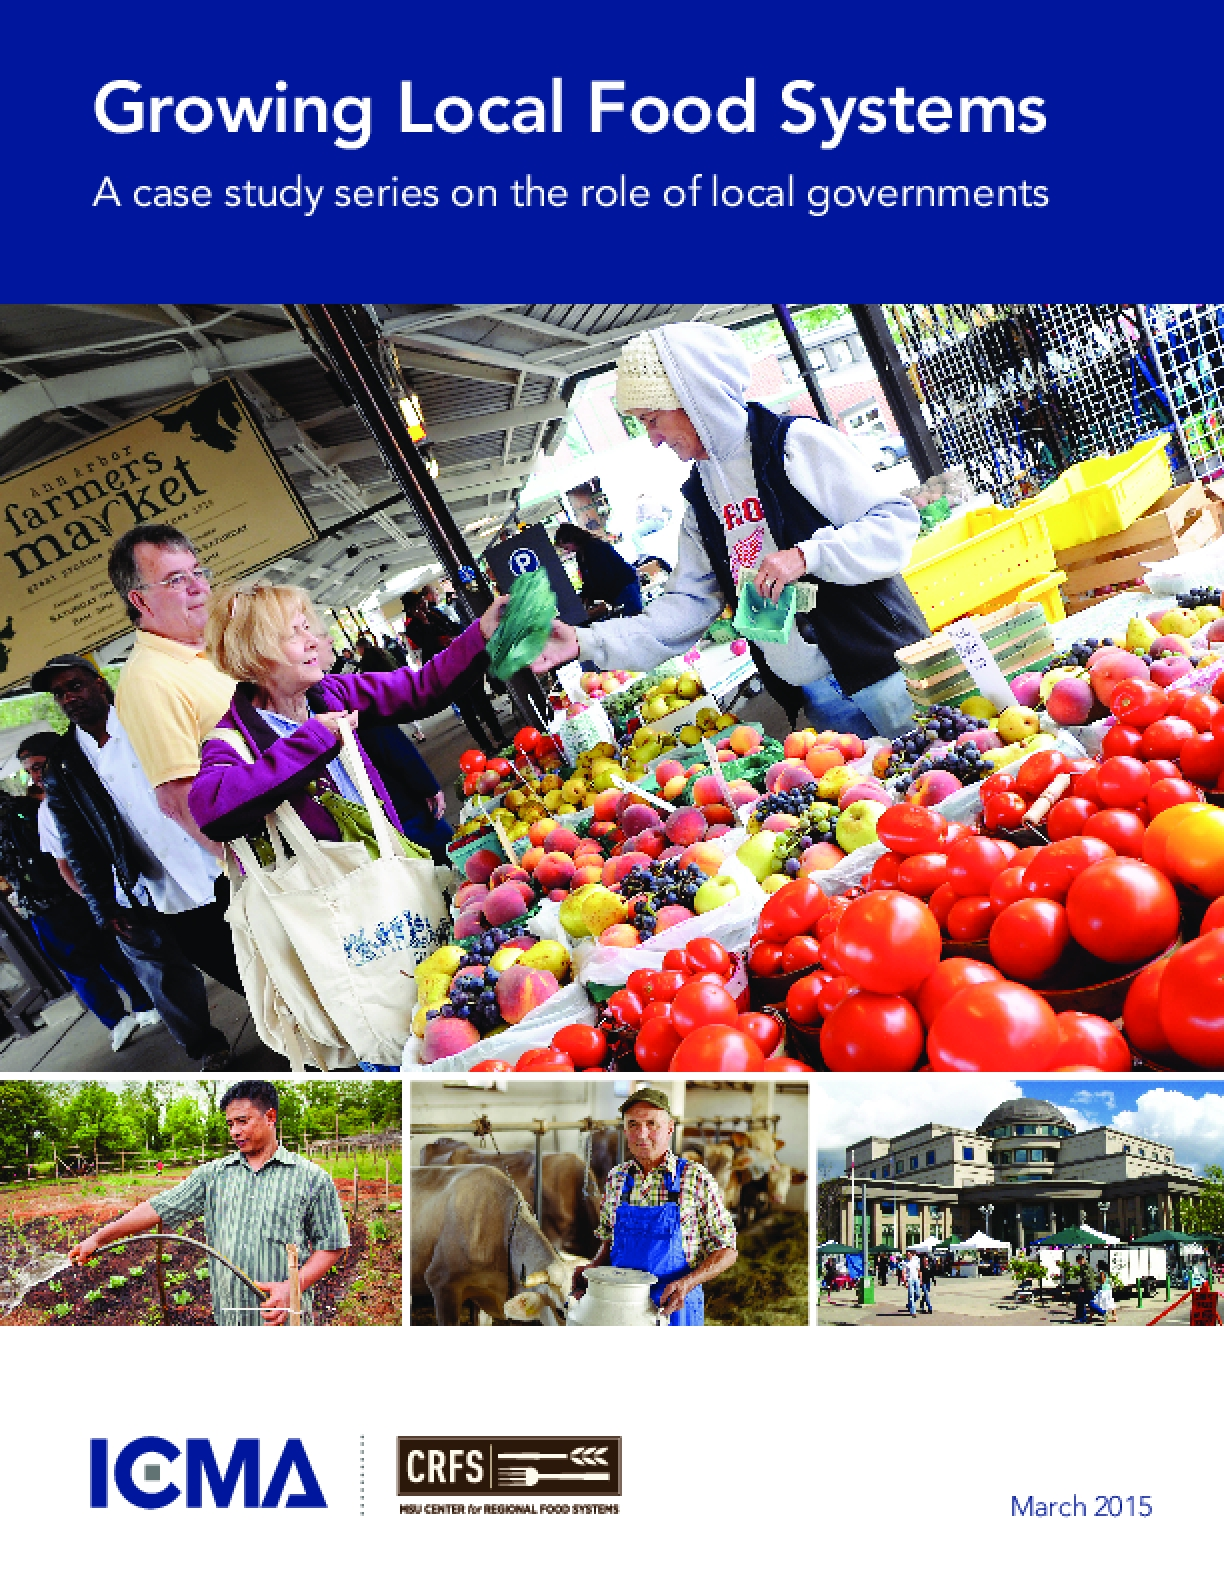 Growing Local Food Systems: A Case Study Series on the Role of Local Governments